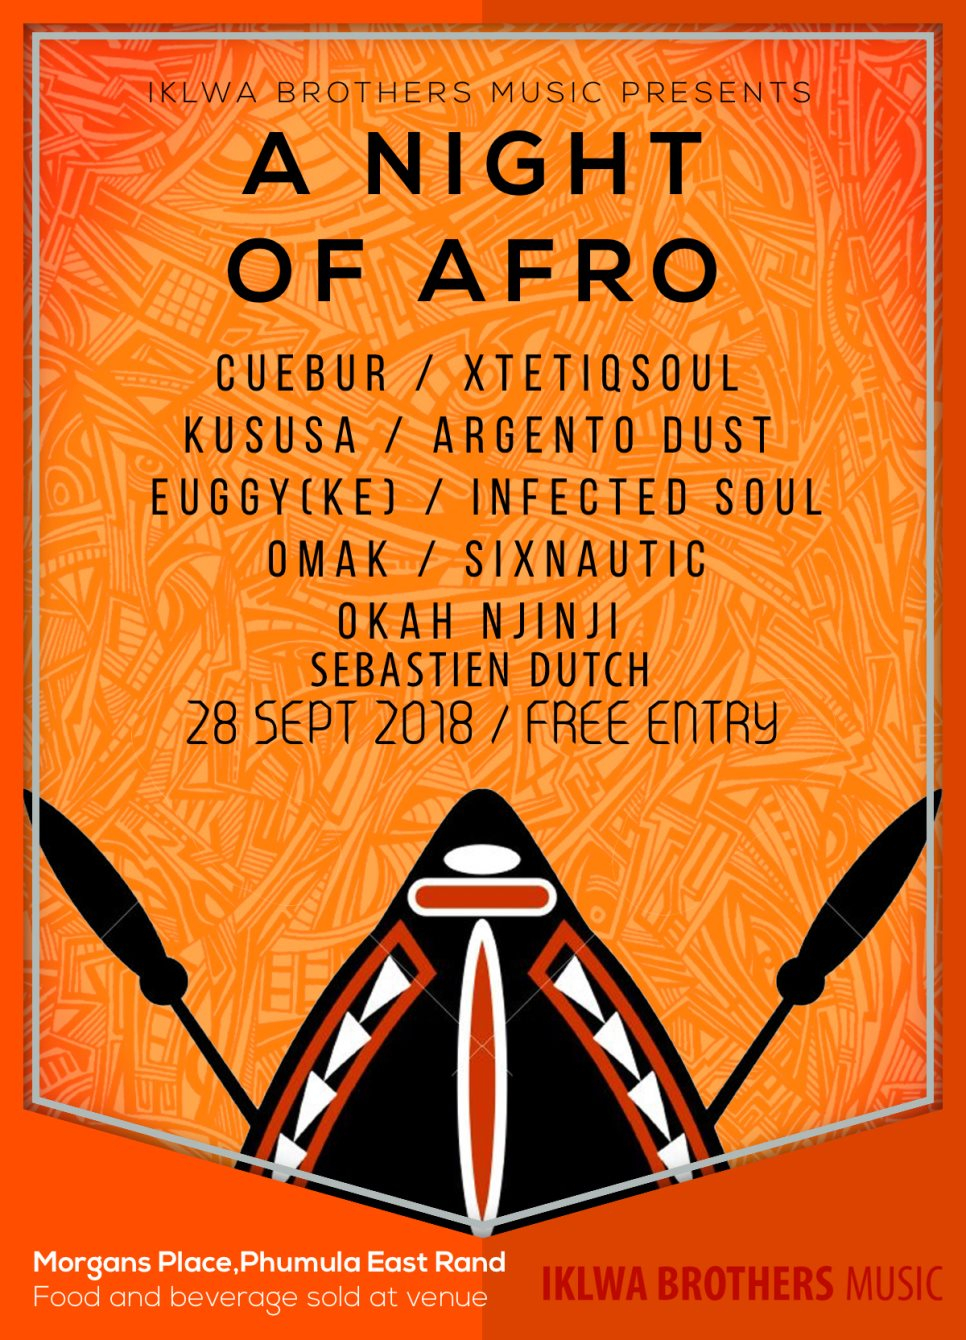 Iklwa Brothers Music presents 'A Night Of Afro' - Flyer front